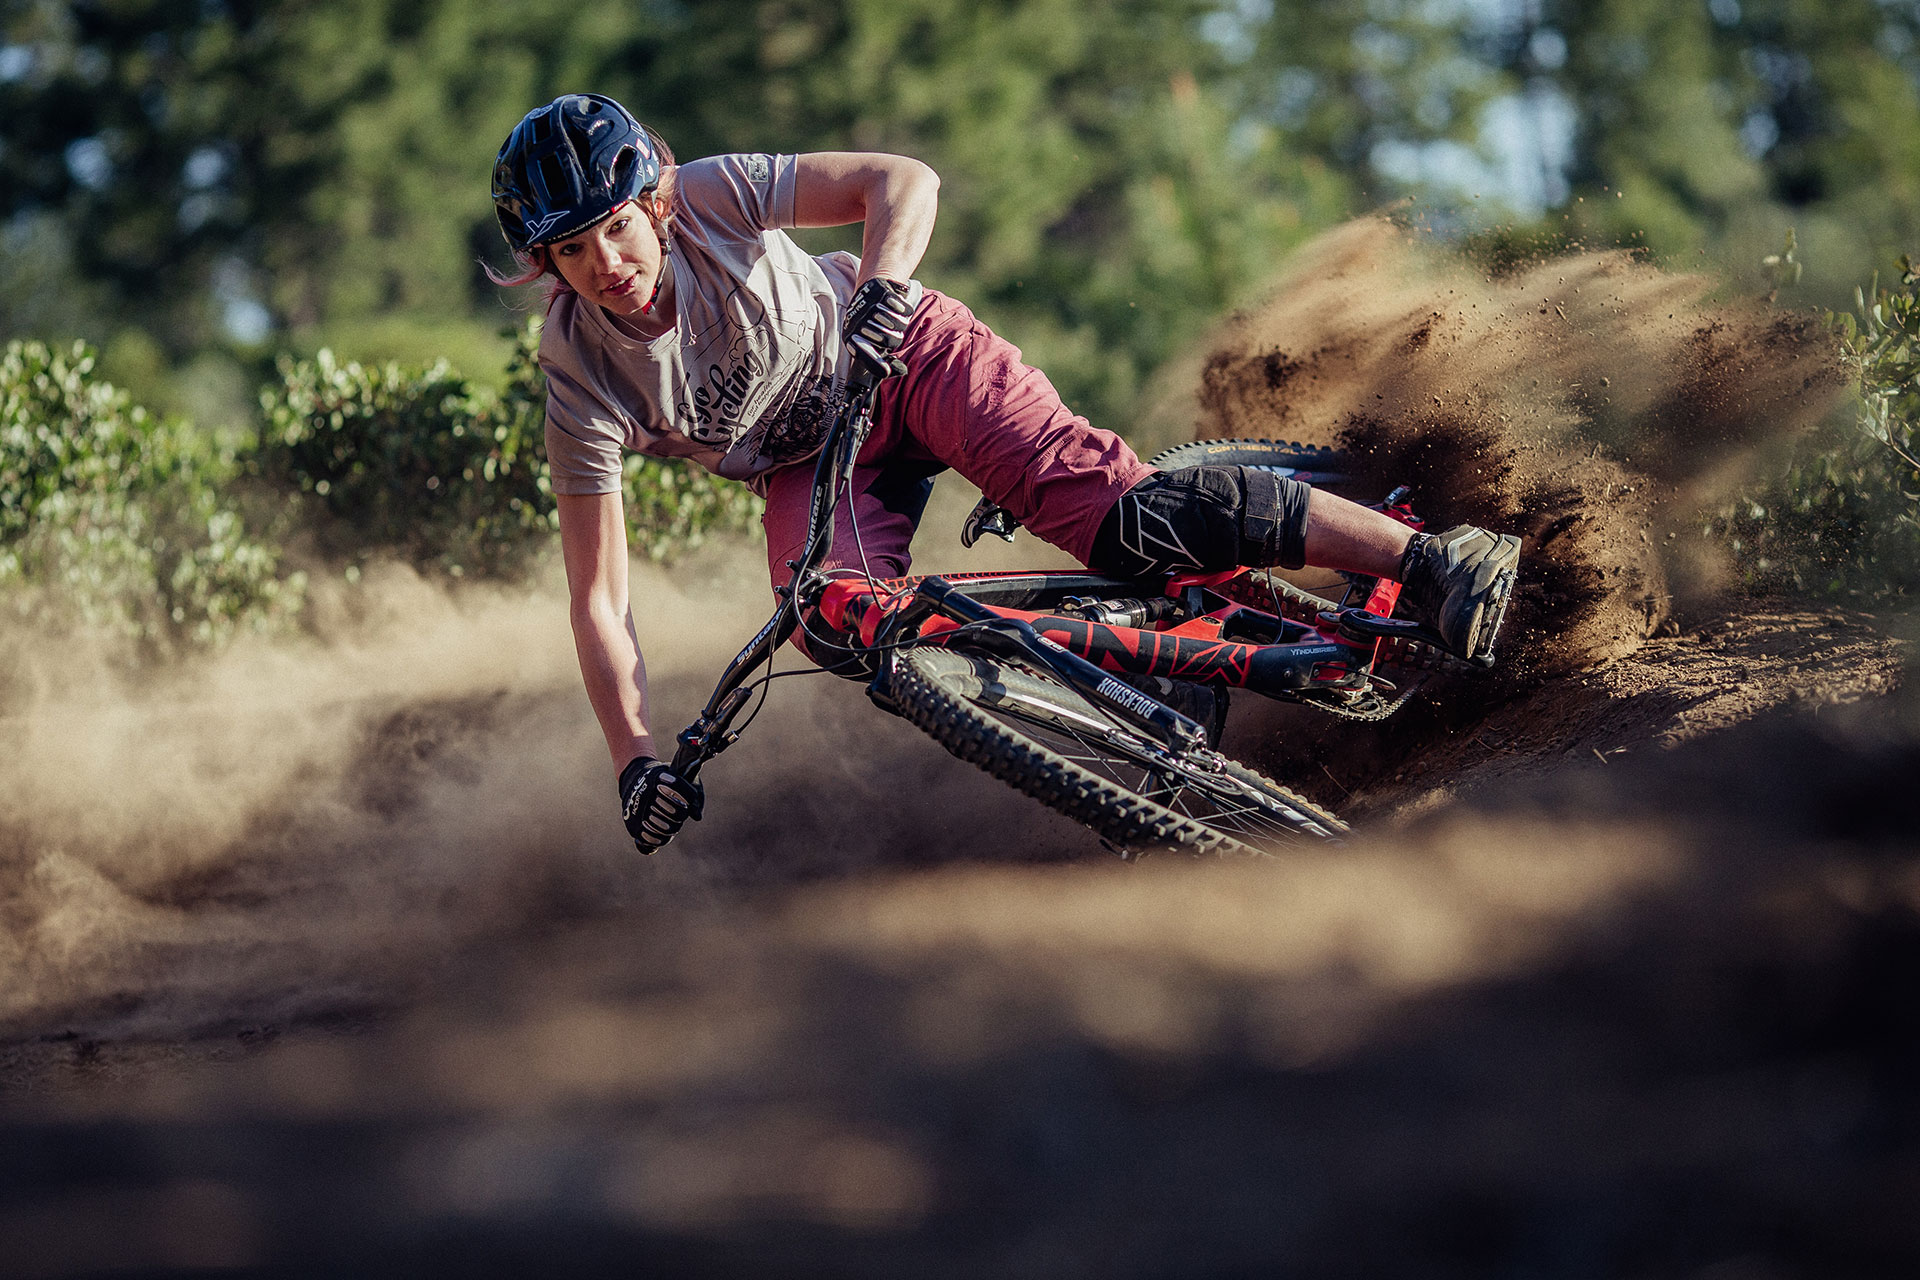 mountainbike freeride drift fotograf lifestyle shooting michael mueller deutschland